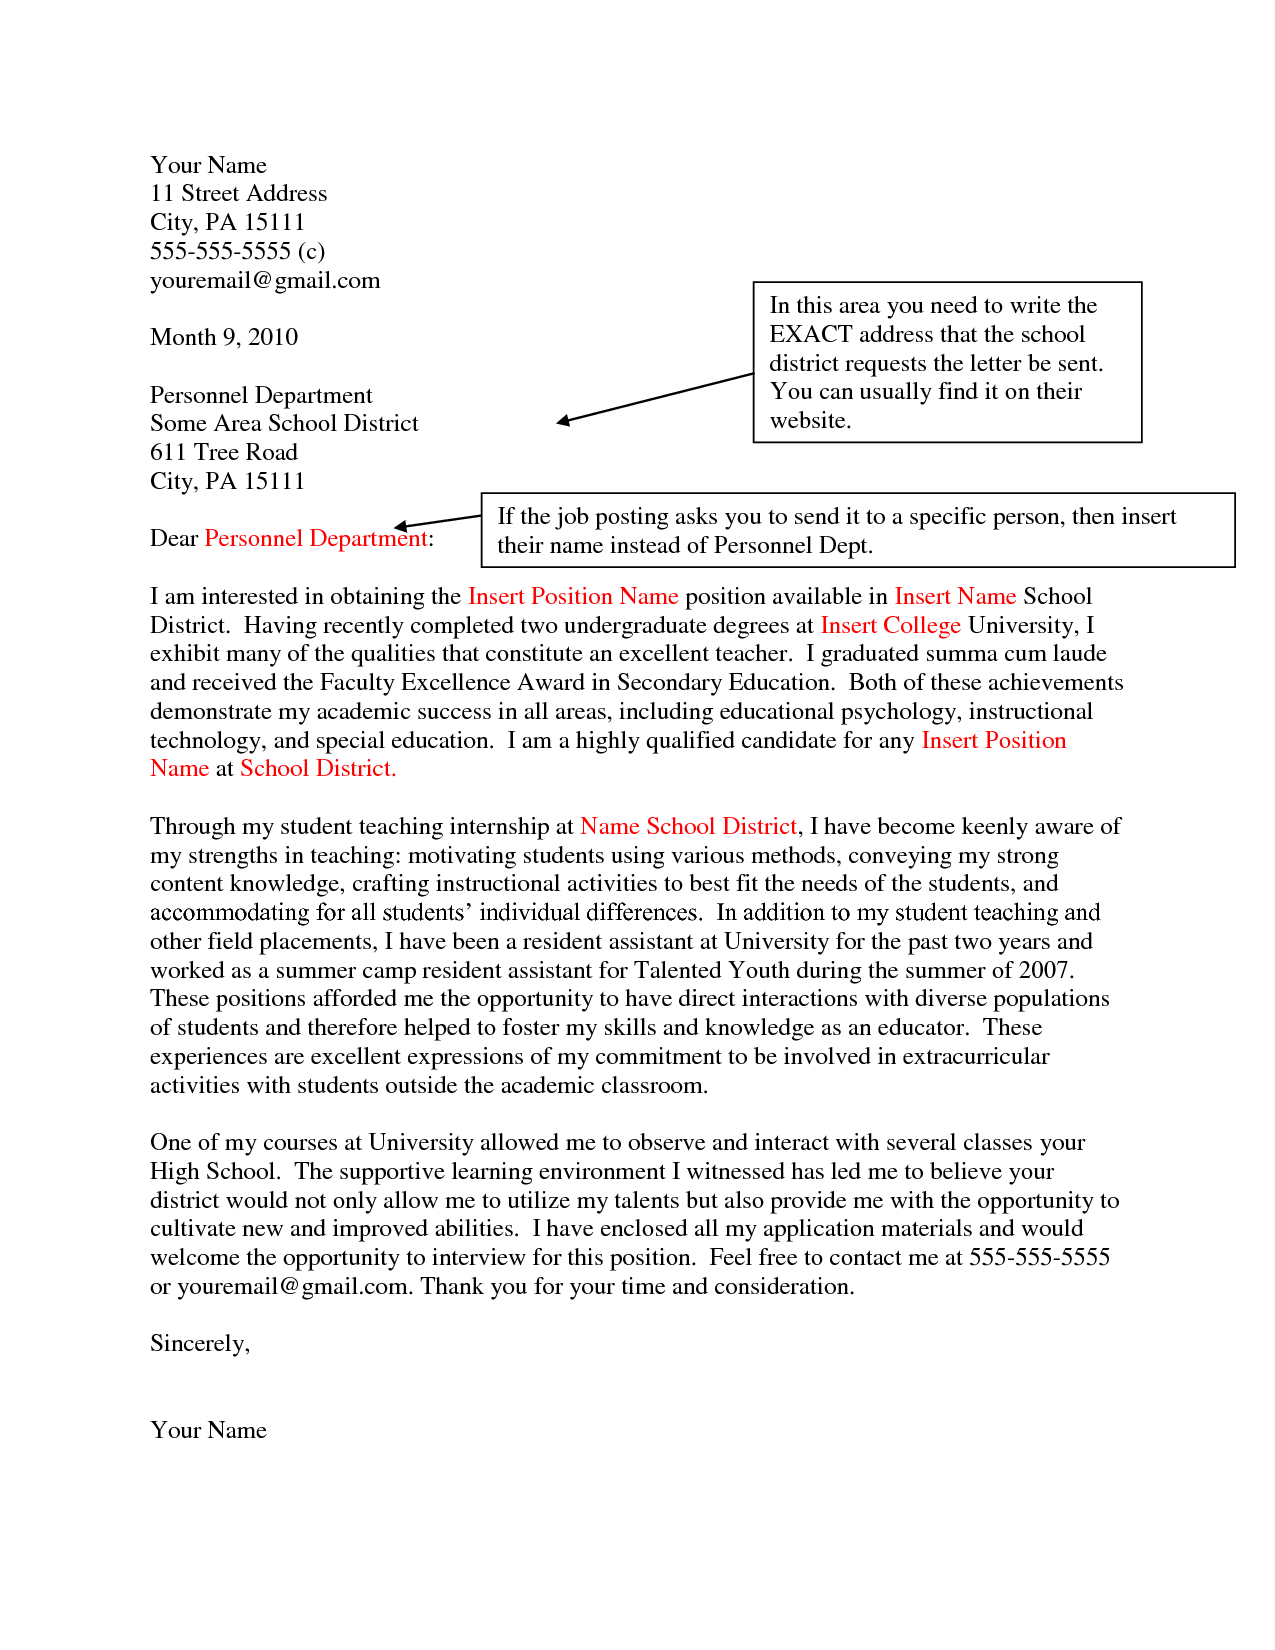 examples of cover letters for jobs selling u and cover letter